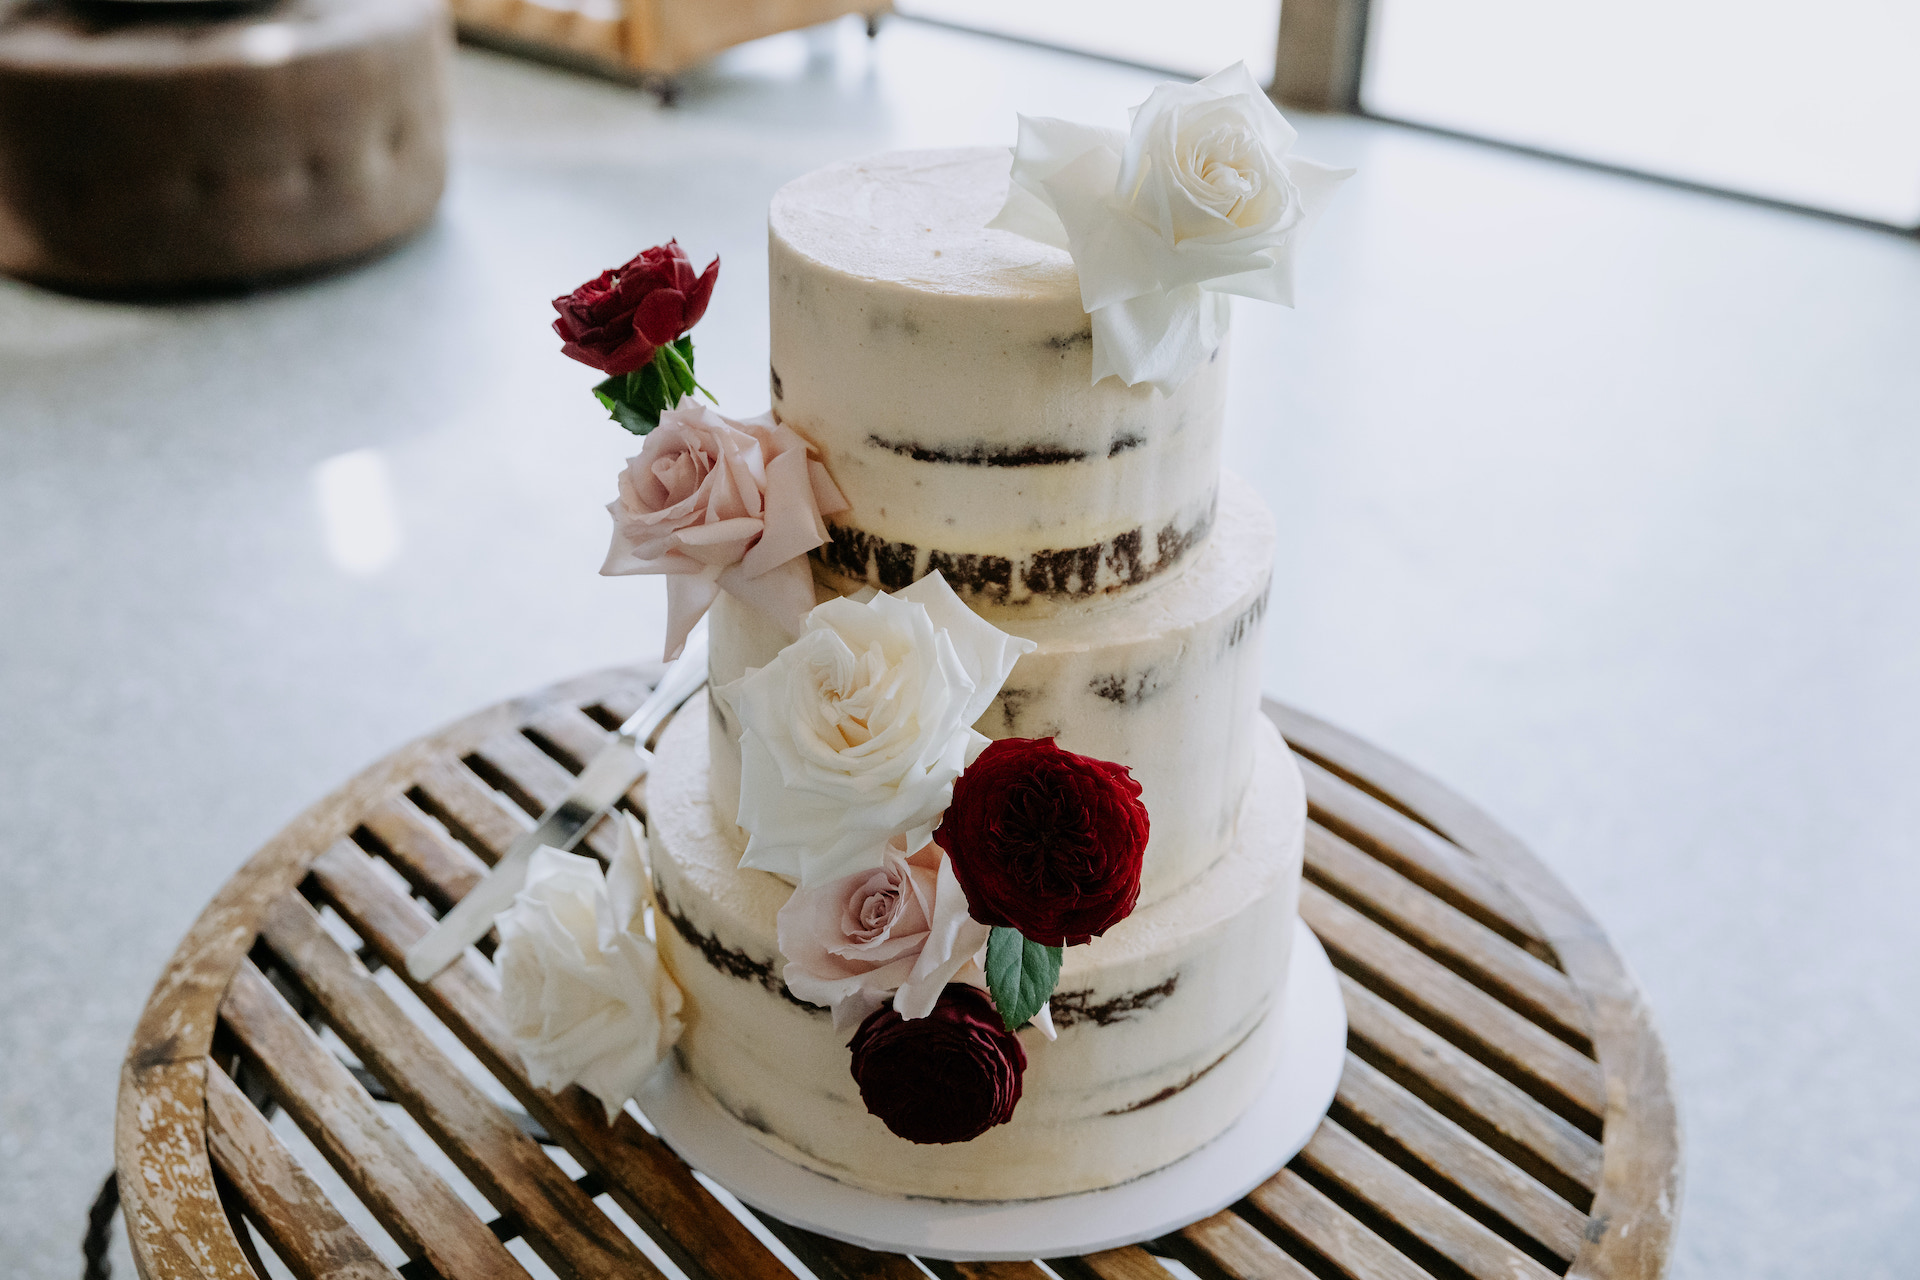 Stones of the Yarra Valley modern wedding cake with bright wedding flowers